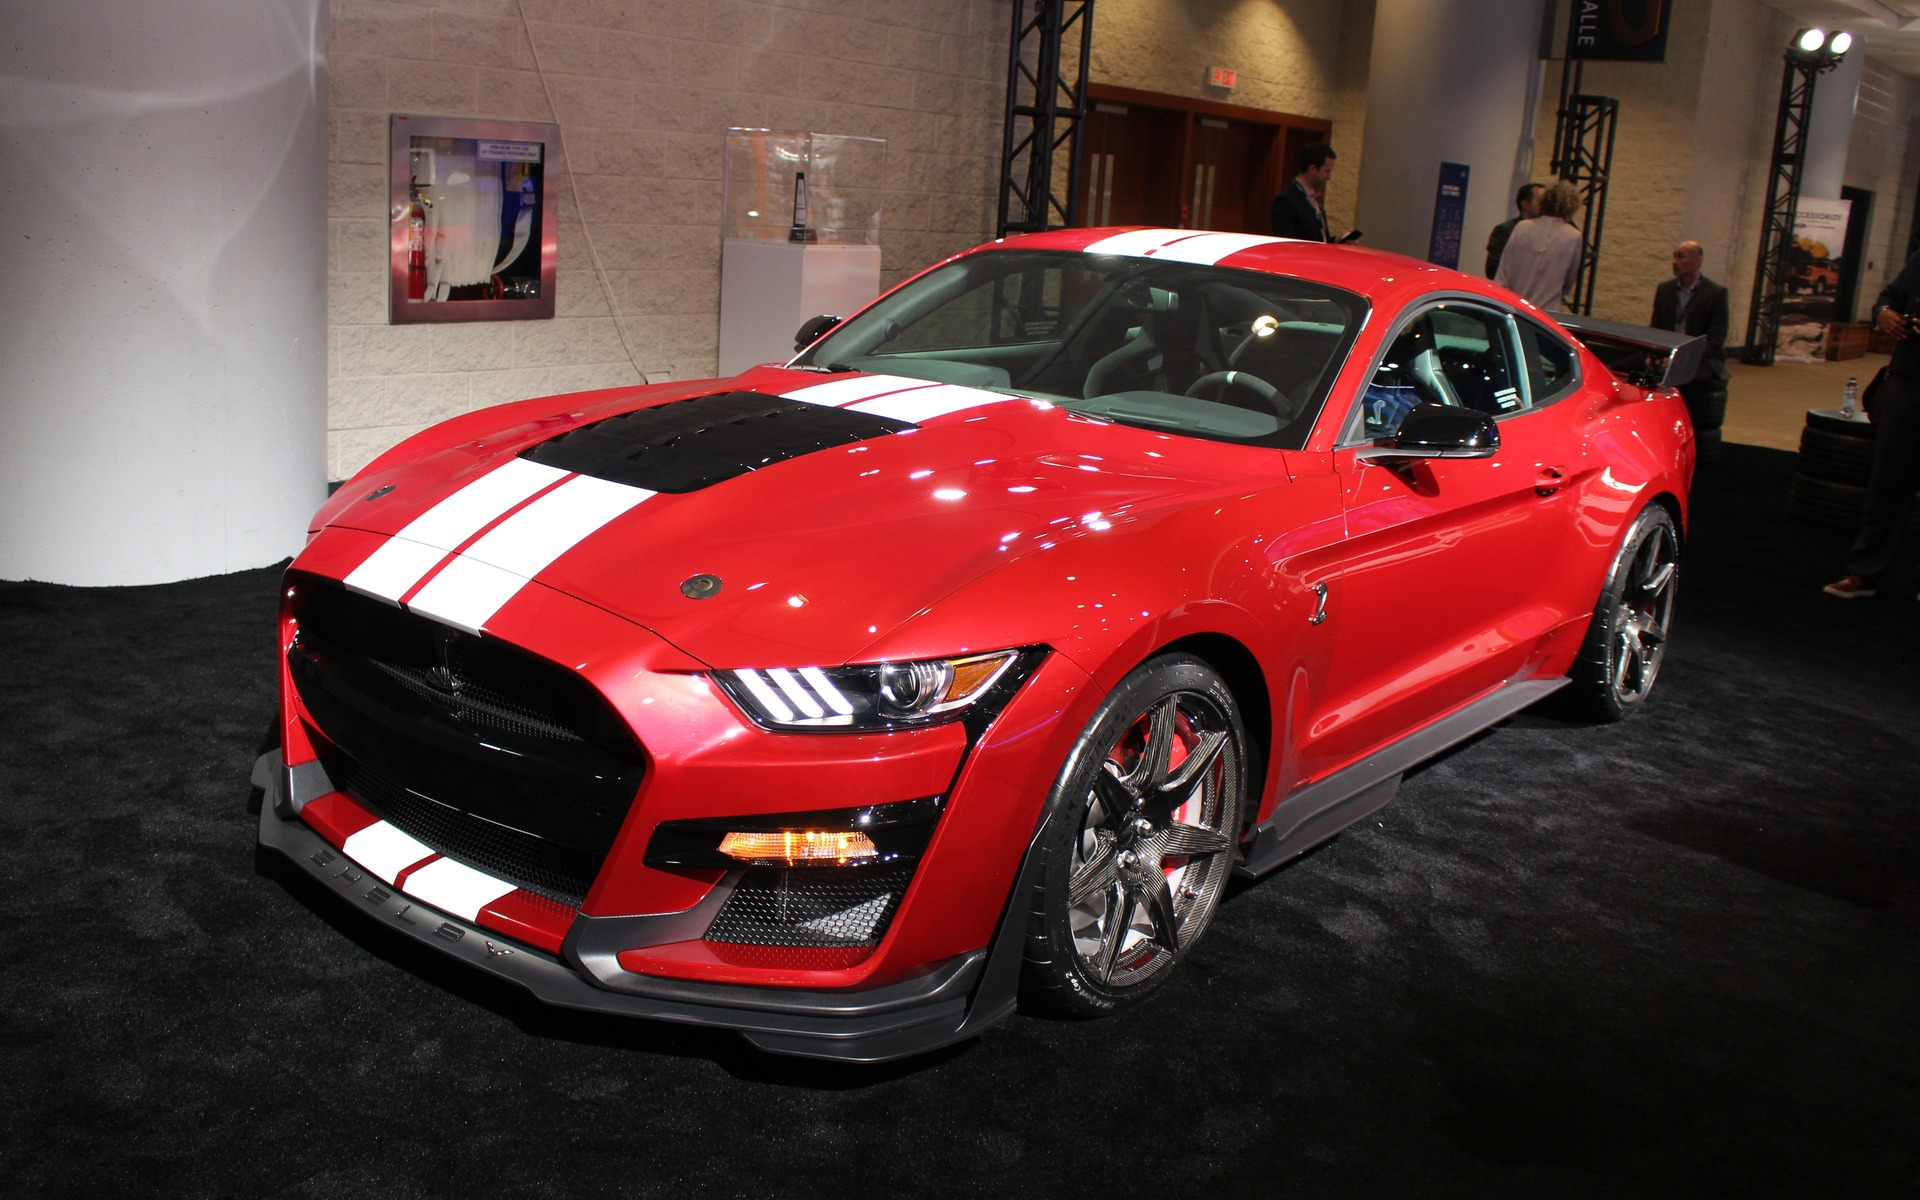 Canadian Premiere Of The 2020 Ford Shelby Gt500 In Toronto